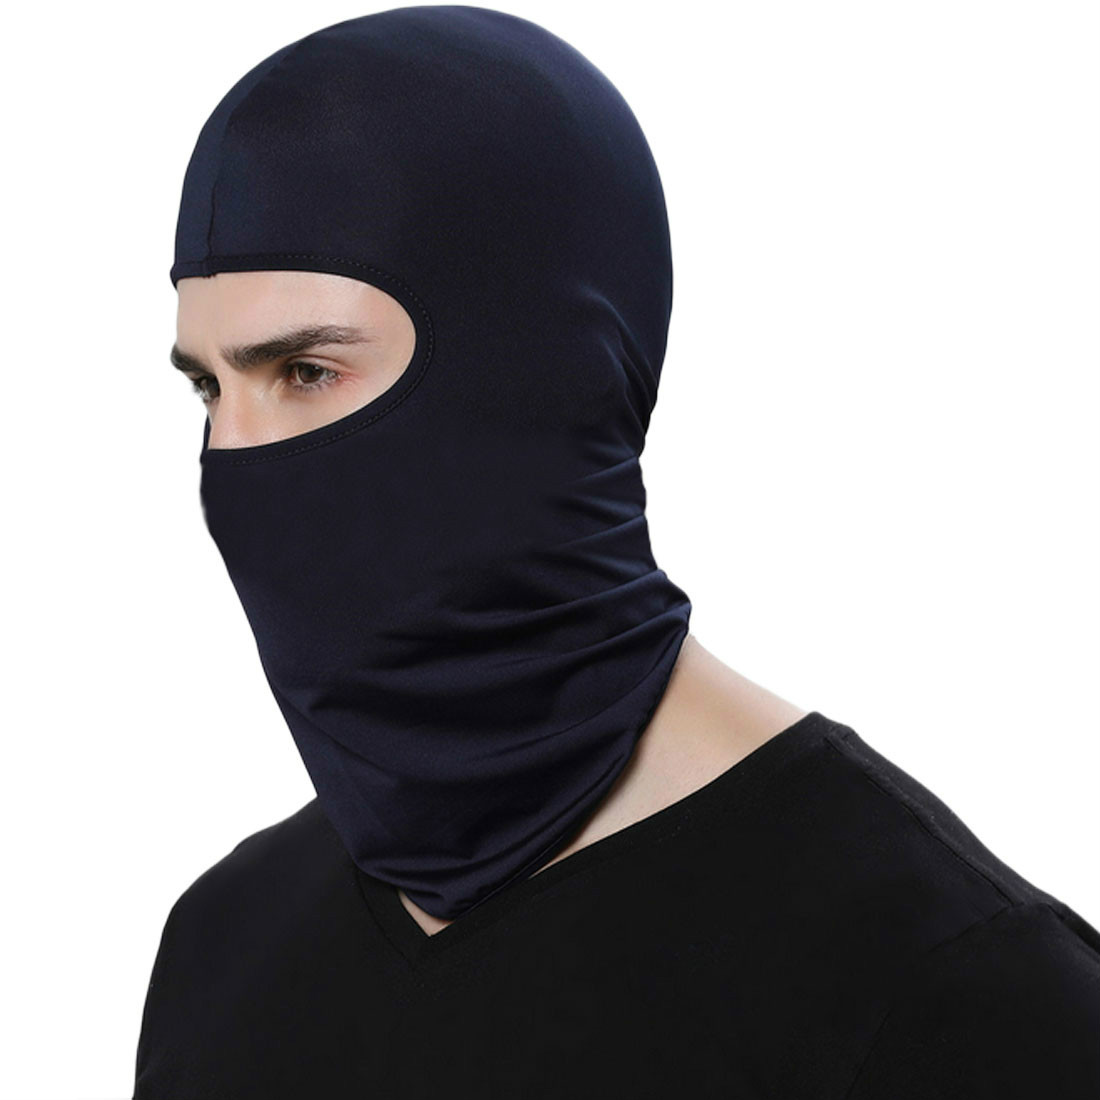 2018 Hot Selling Cycling Face Mask Ski Neck Protecting Outdoor Balaclava Full Face Mask Ultra Thin Breathable Windproof лакомство для грызунов чика зернышки